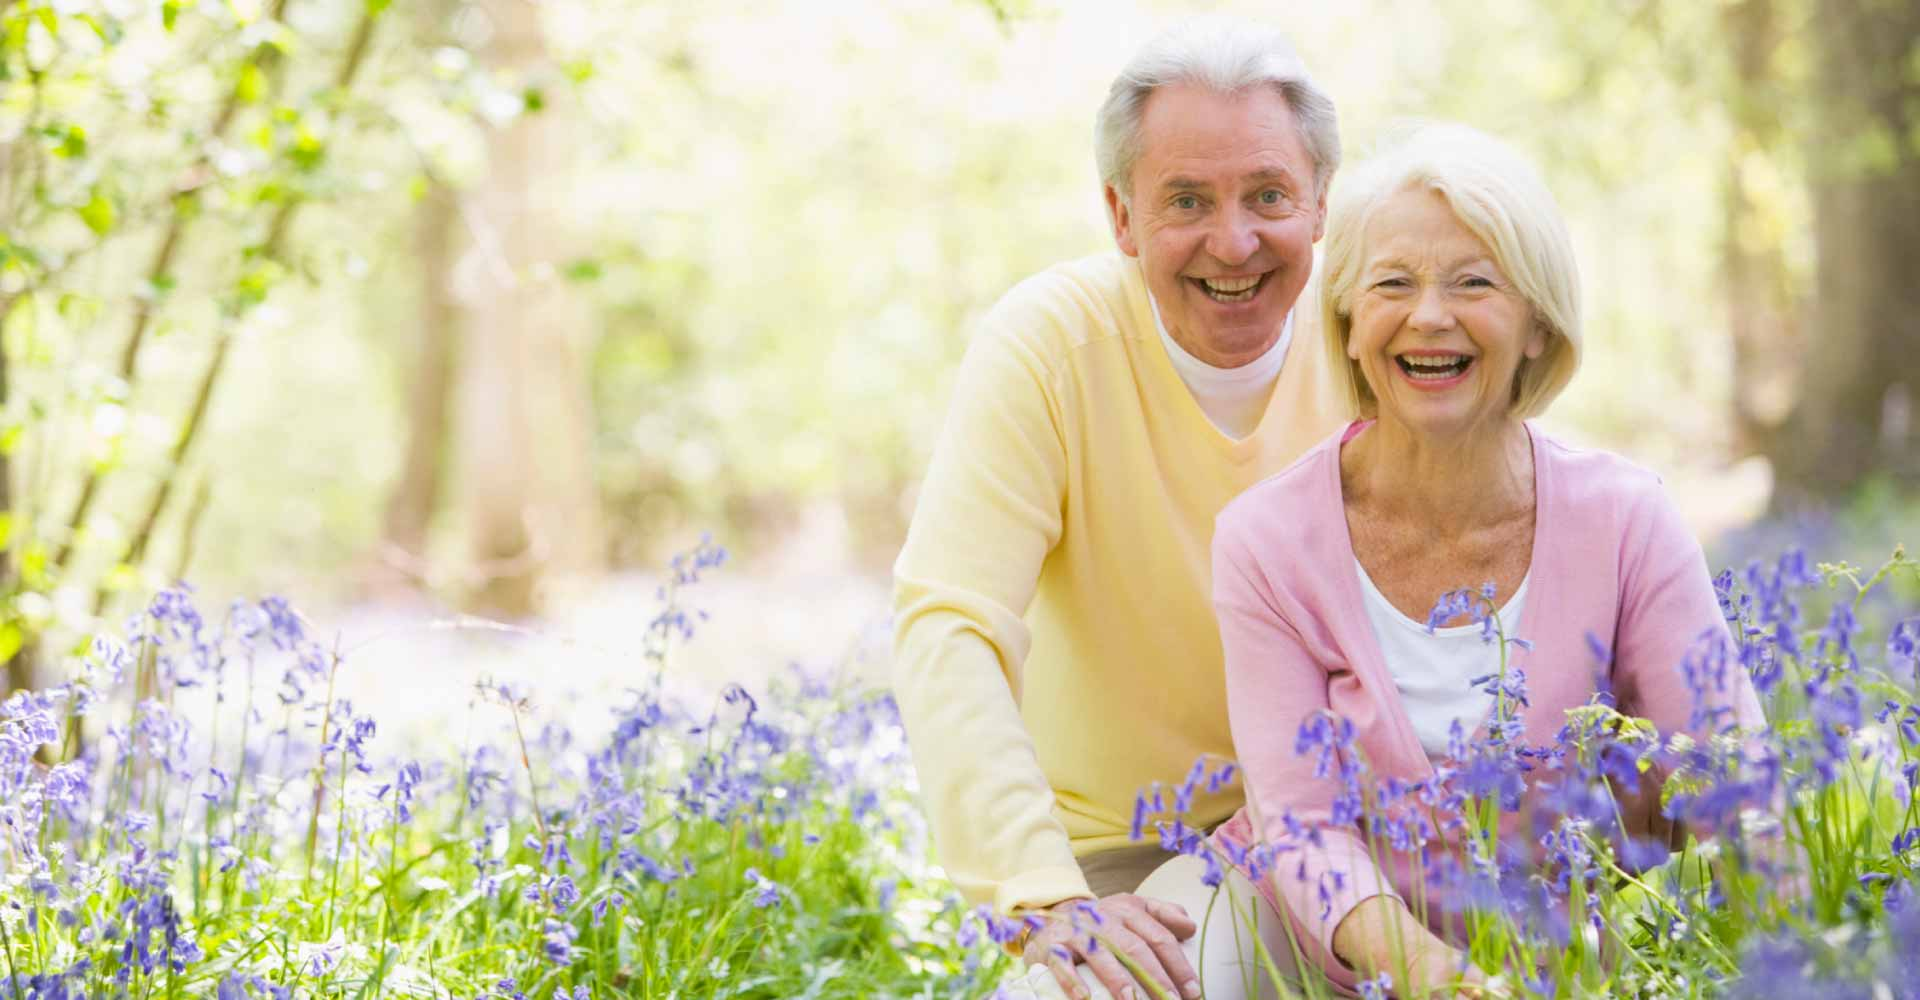 smiling elderly man and woman couple in a grassy field with purple flowers